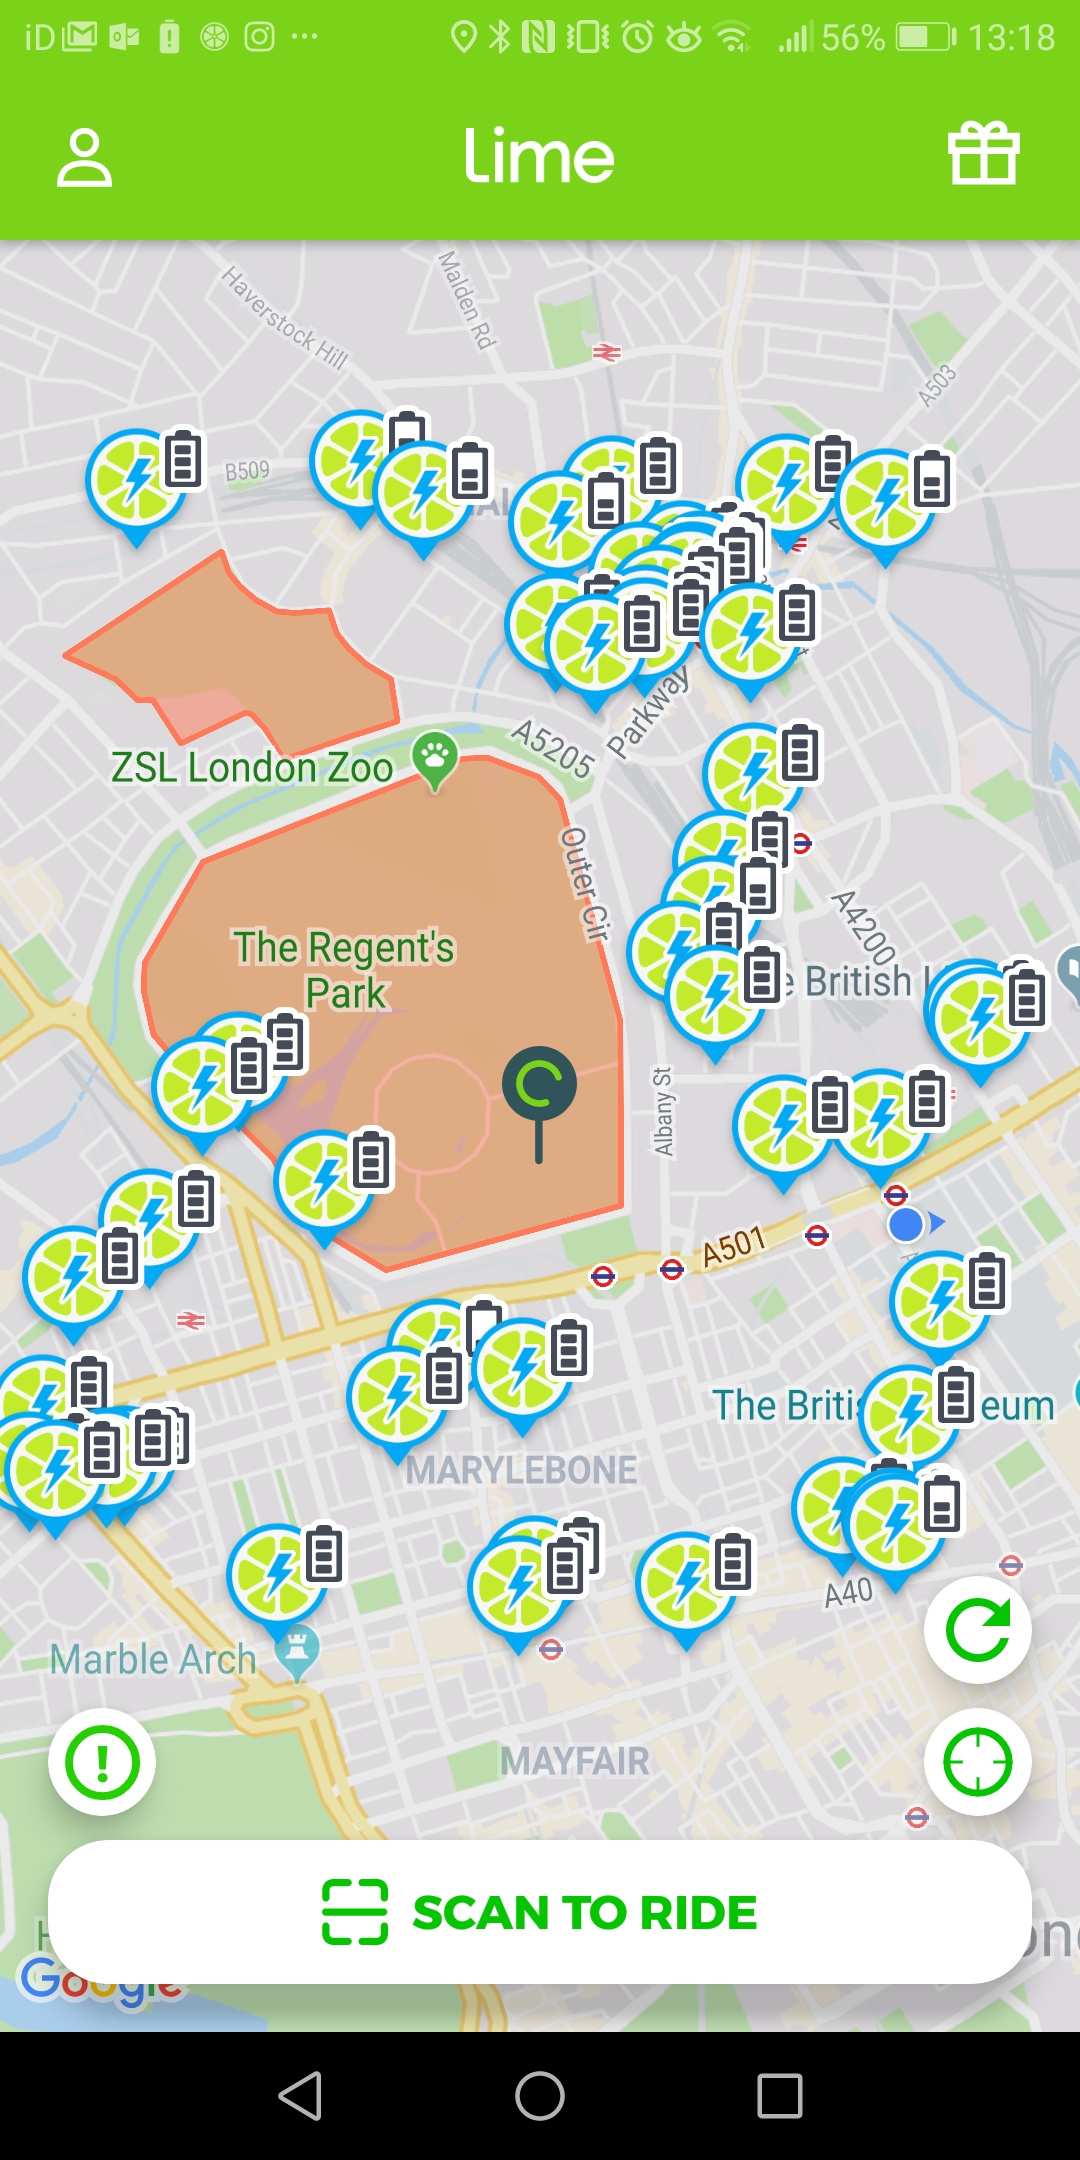 Lime-E Bikeshare: London Test | Suprageography on london building map, london train map, trafffic charge london map, london rex, london fallen angel, london monitor, london zone 1, london tube passes for tourists, london home map, london congestion charge map, london cambridge map, london bus map, london red map, london metro map, london travel zones, london sky pool, london map tourist, london global map, london postcode map, london points of interest,